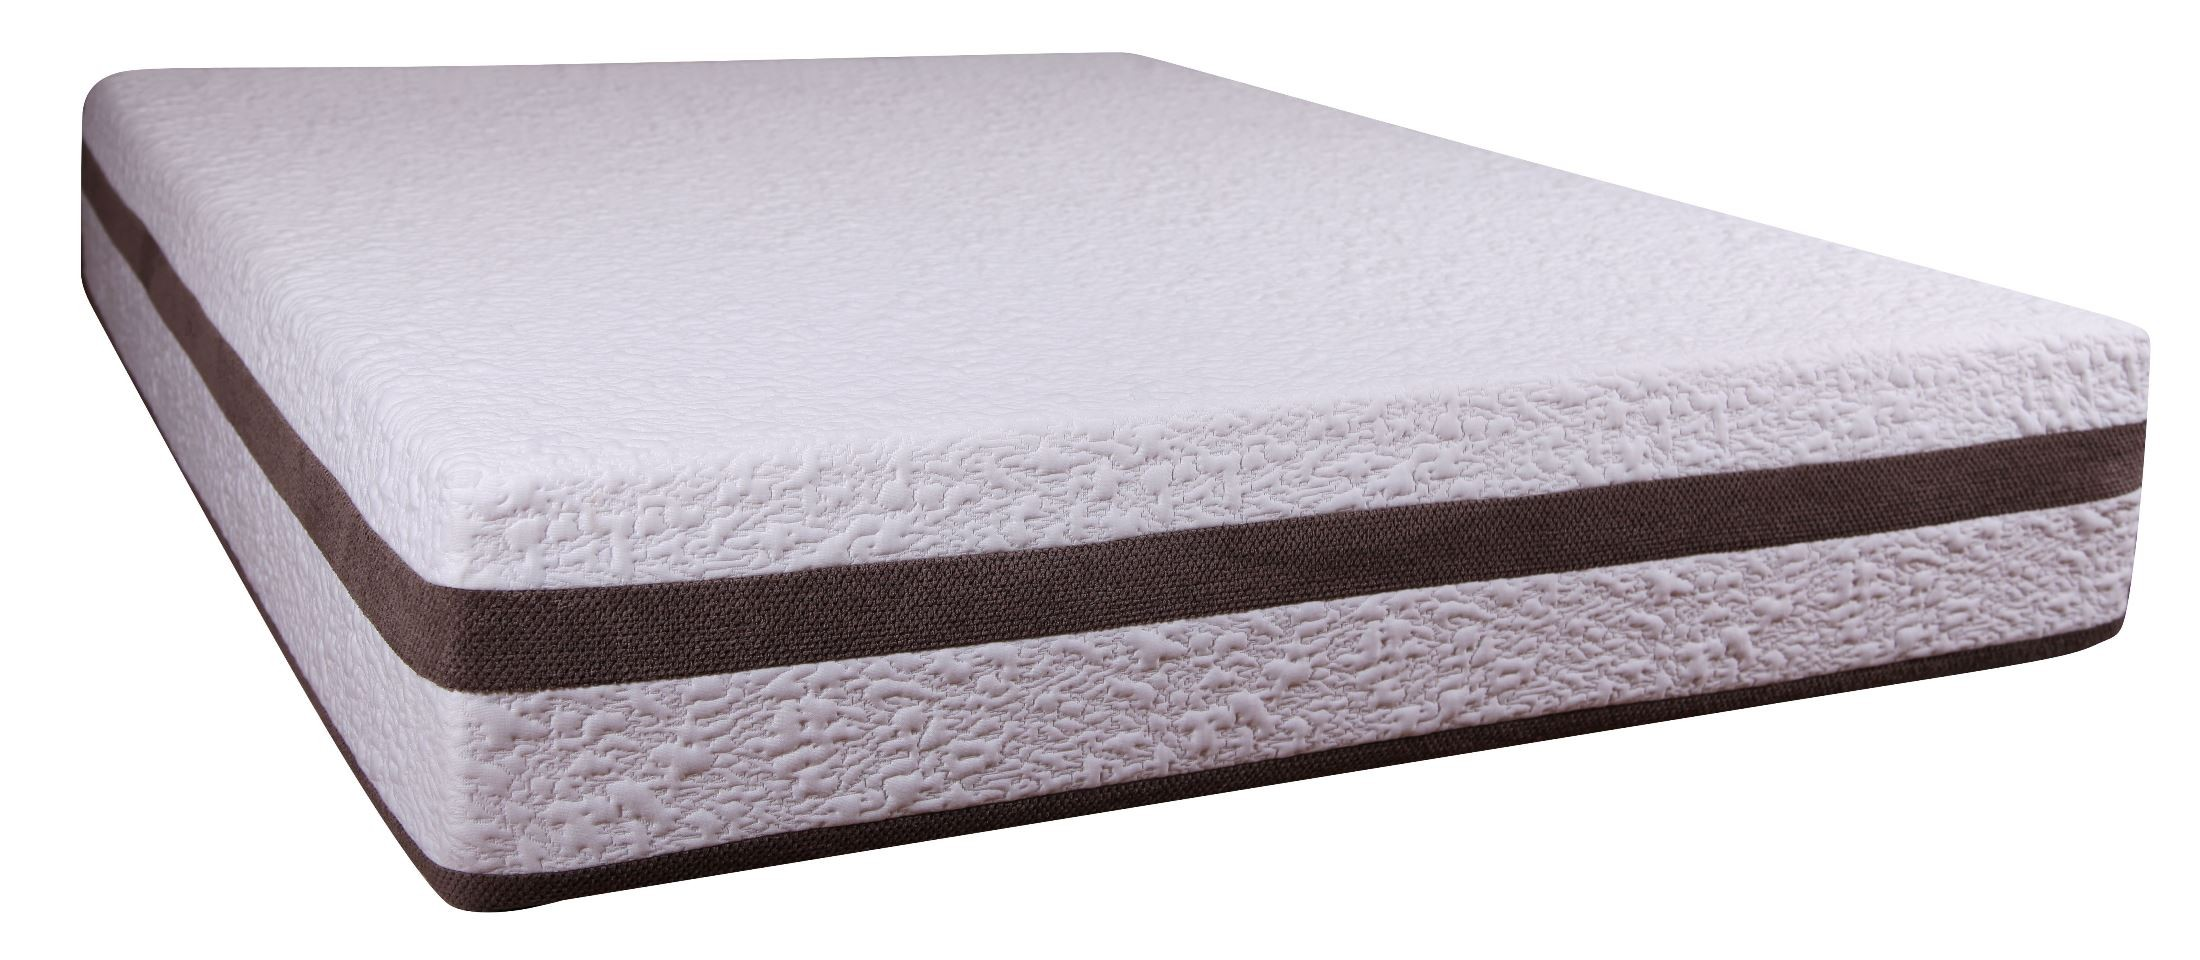 Nova 11 5 memory foam full size mattress from klaussner novaffmat coleman furniture Full size memory foam mattress